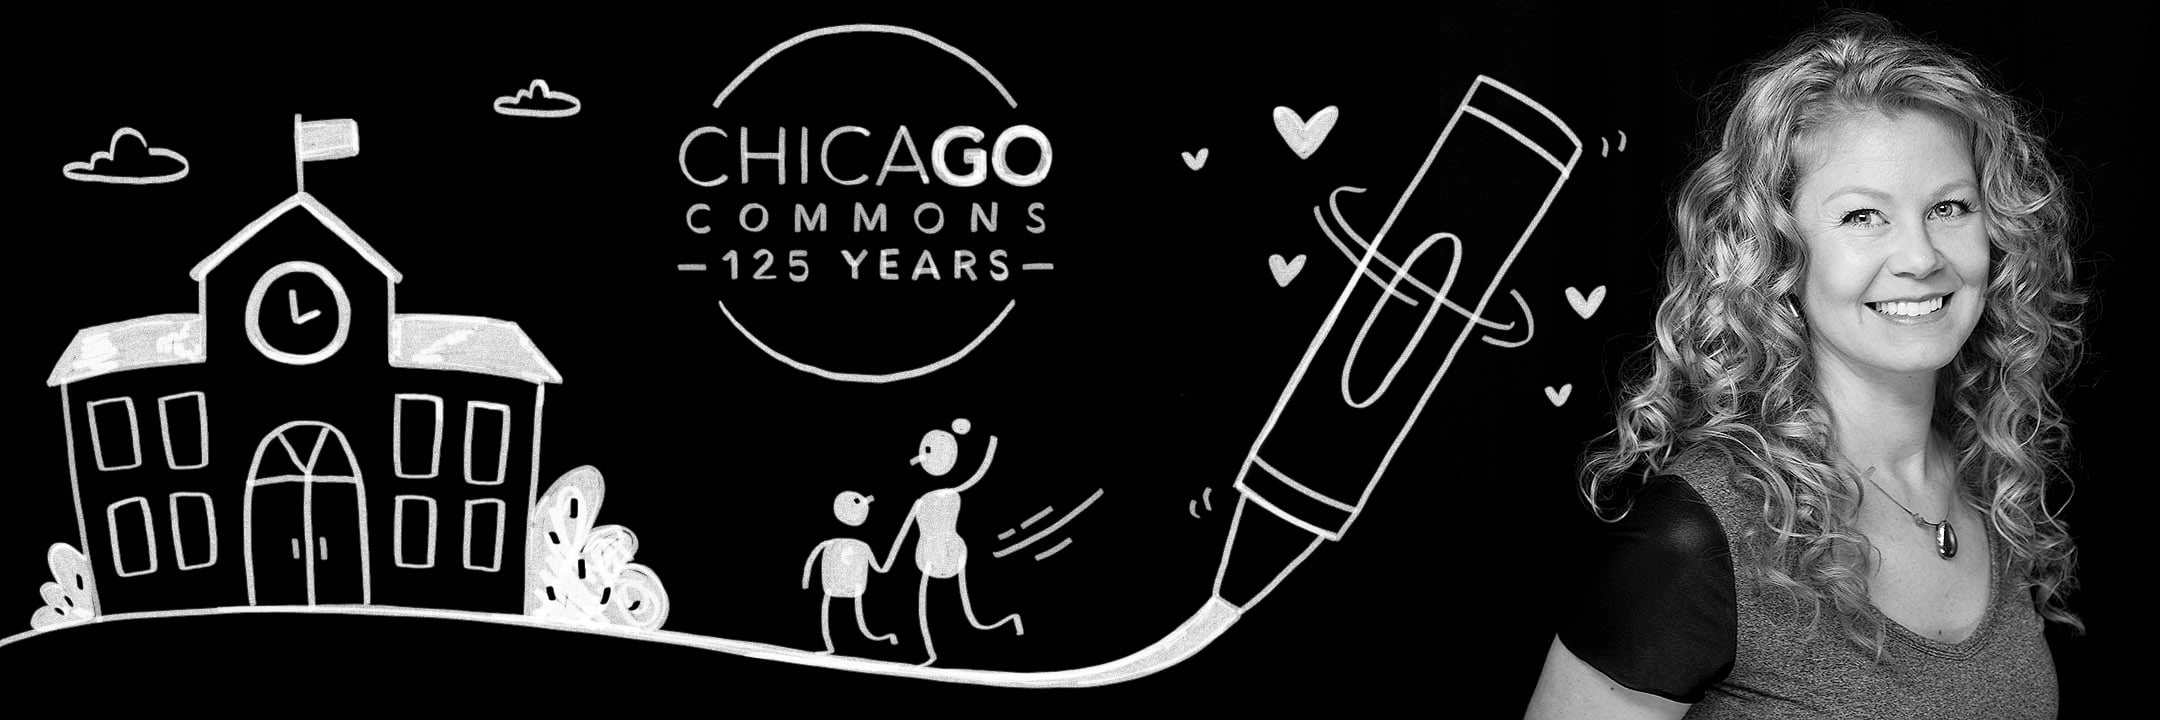 Chicago Commons charity for Giving Tuesday